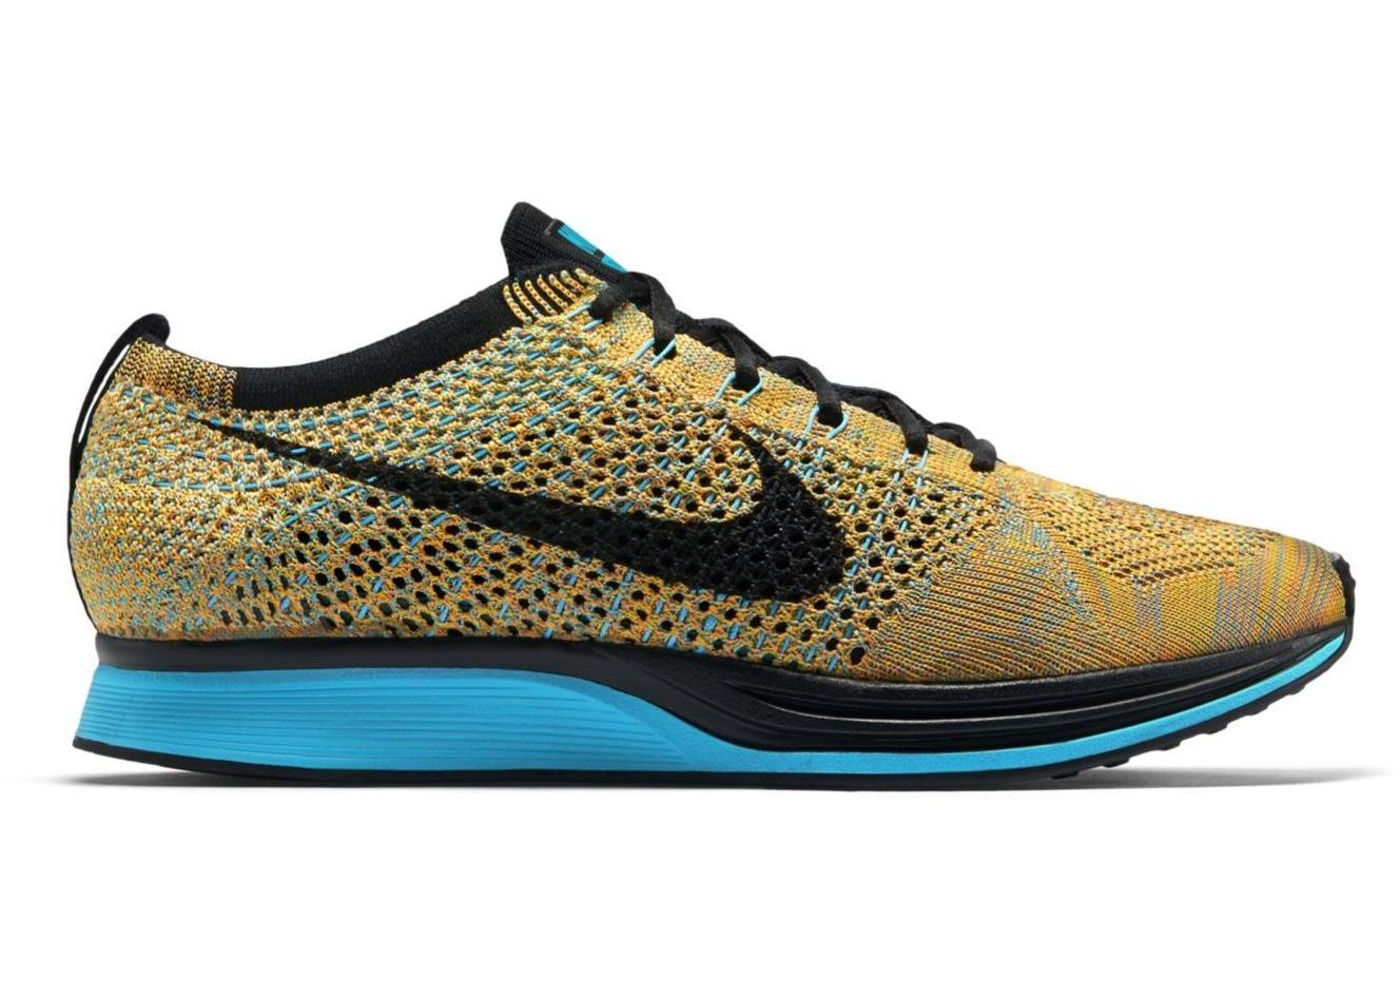 low priced ca8c5 9ab1d Nike Flyknit Racer Sherbet - 526628-800